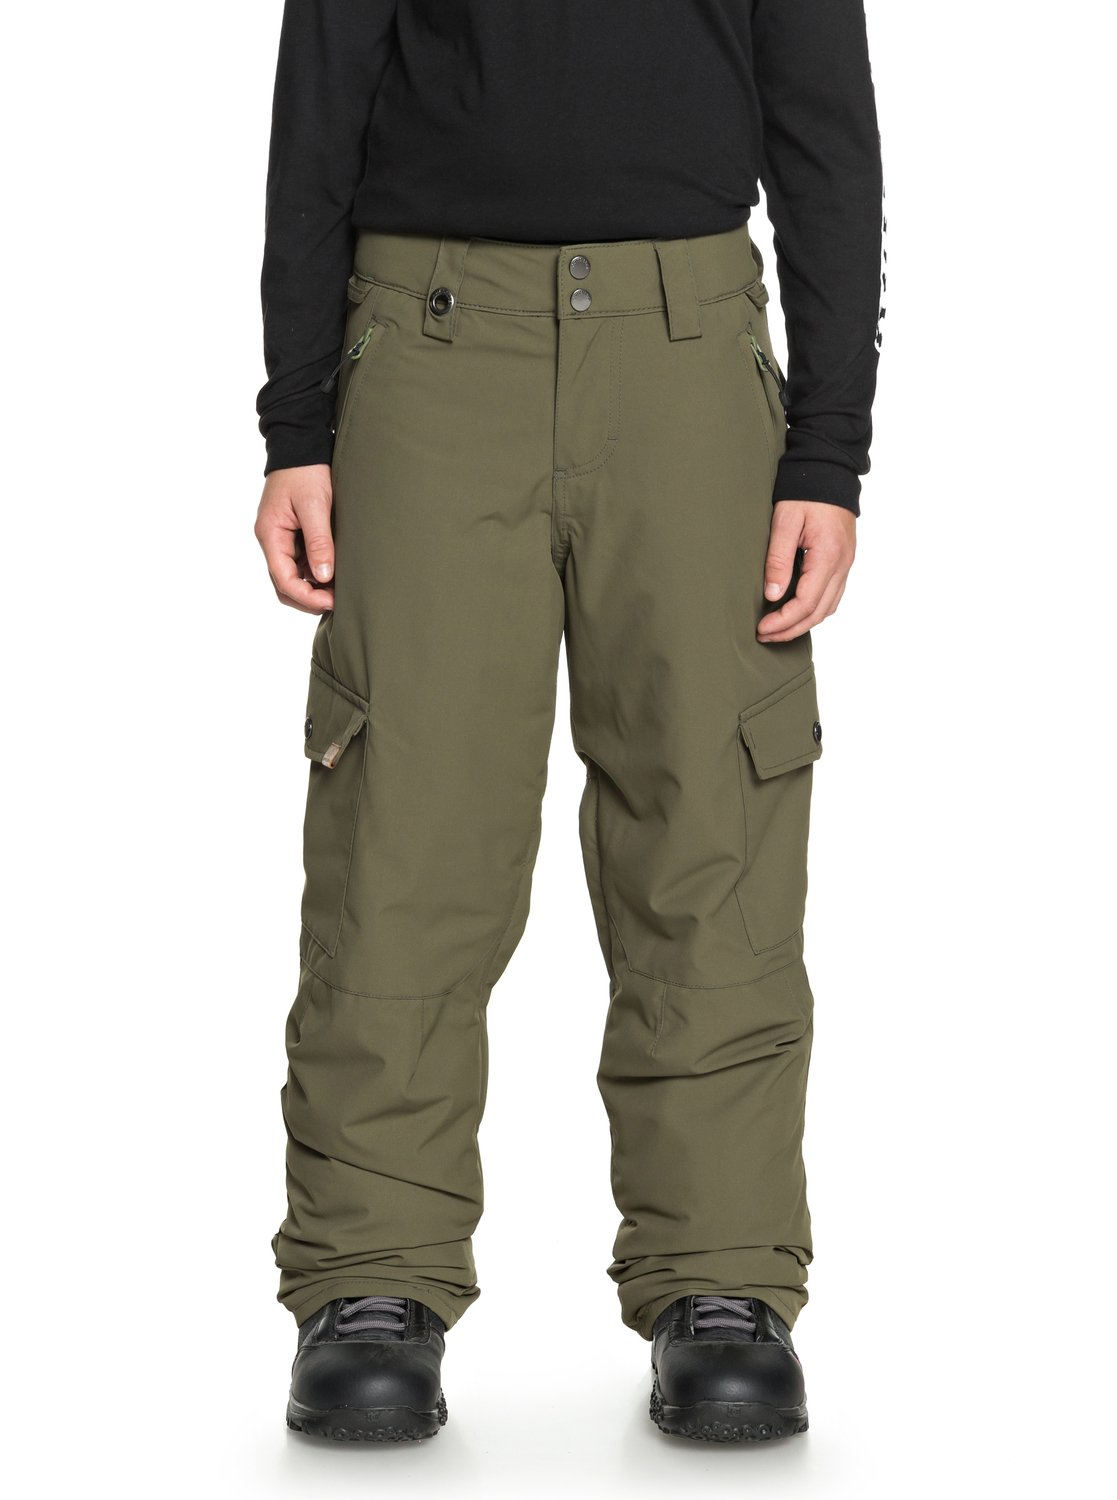 8106a4b435ba Porter - Snow Pants for Boys 8-16 3613373693549